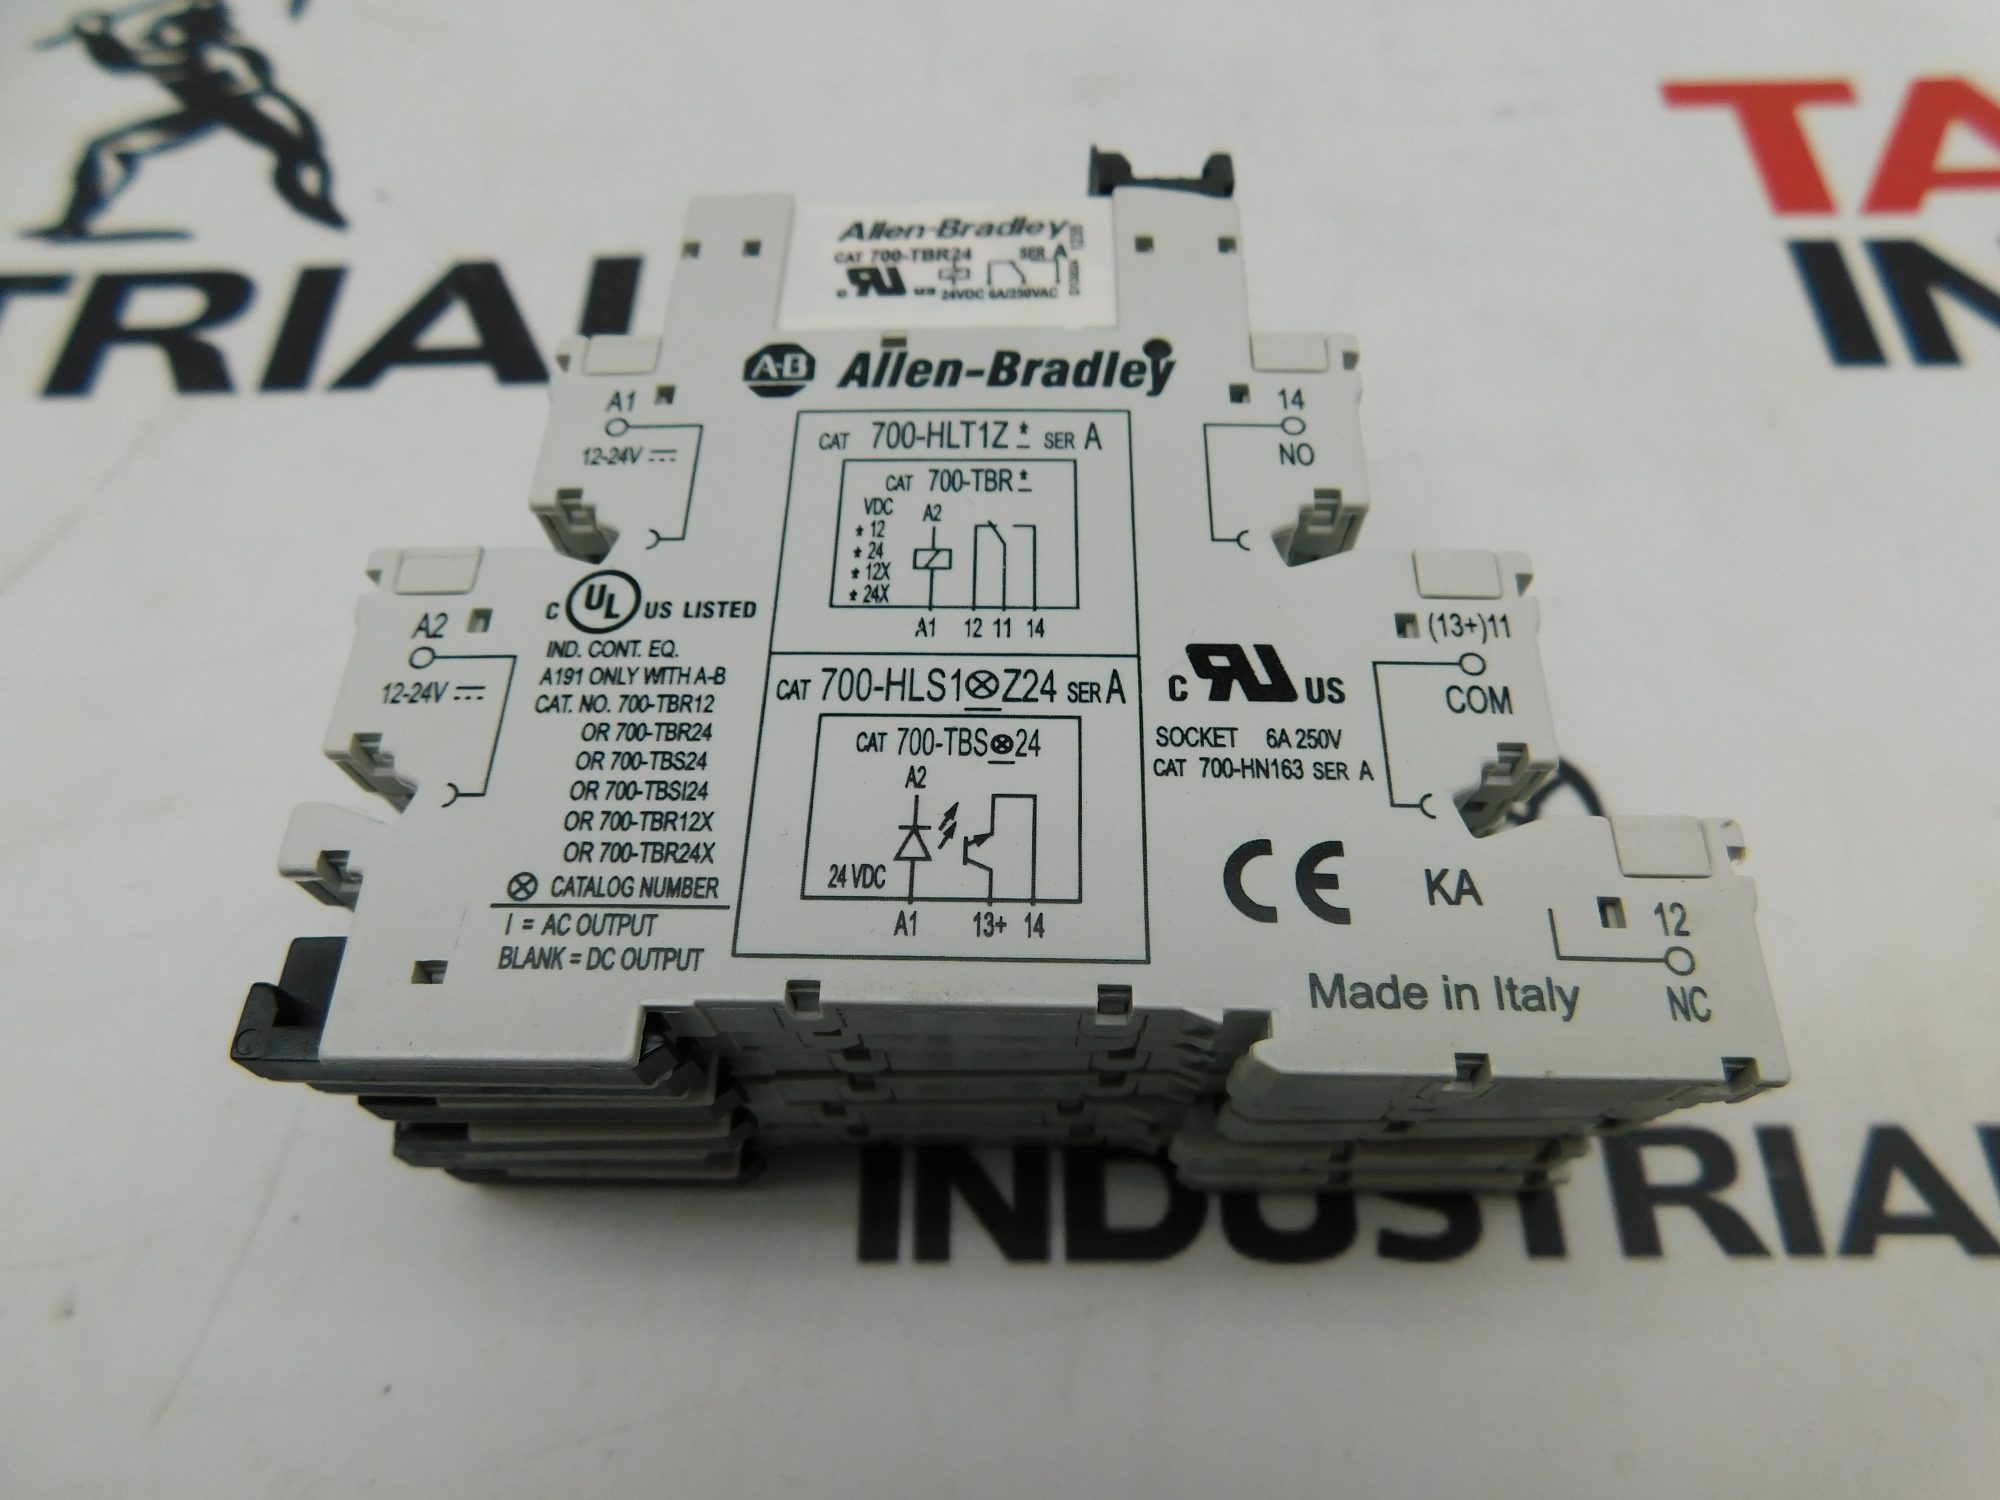 Allen-Bradley CAT No. 700-HLT1Z24 Series A